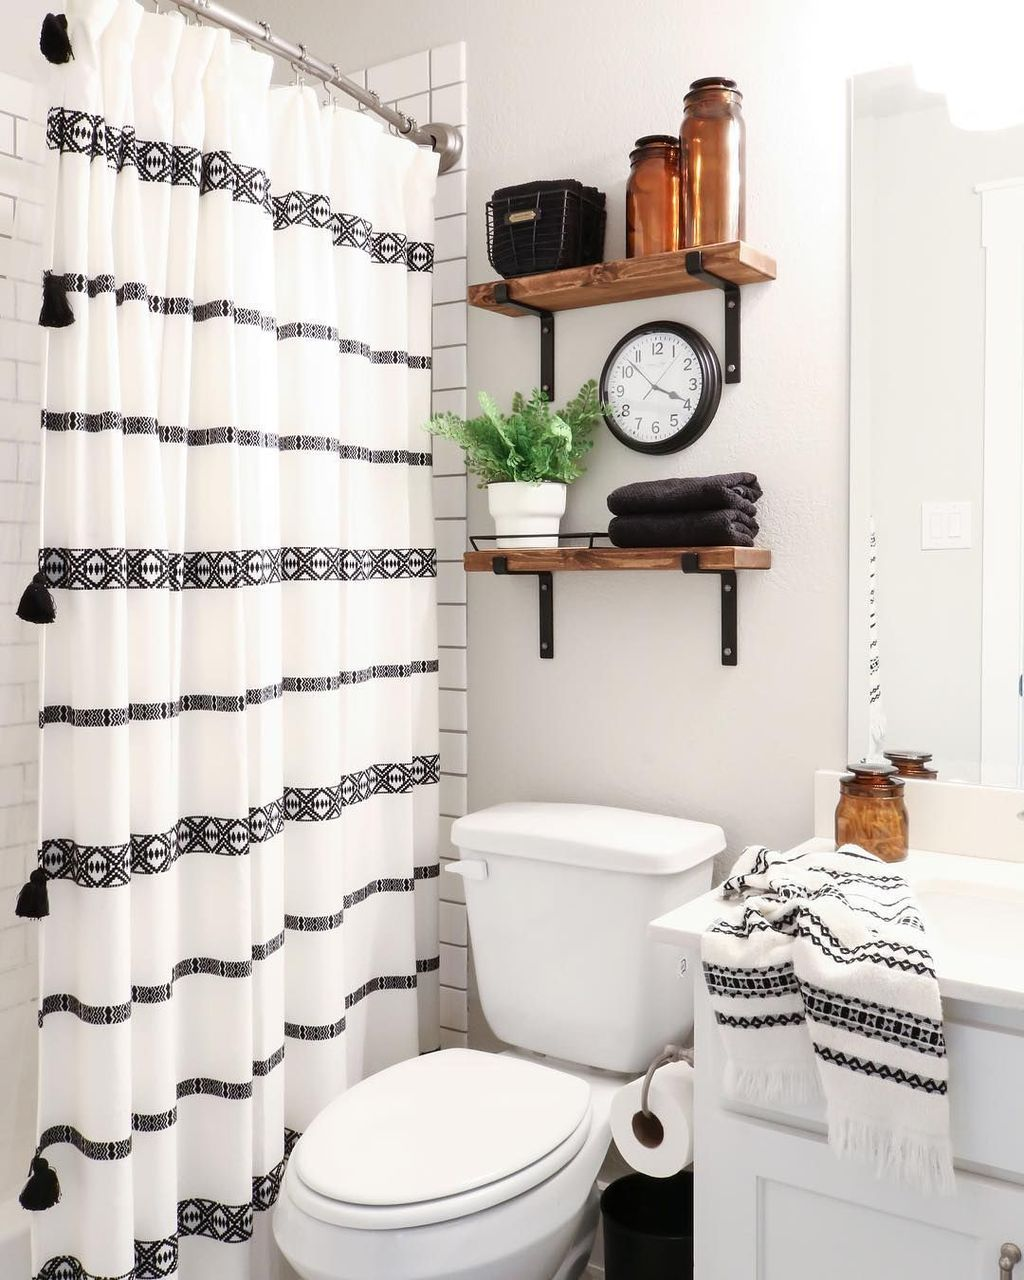 Amazing Black And White Shower Curtain For Your Bathroom Decor 01